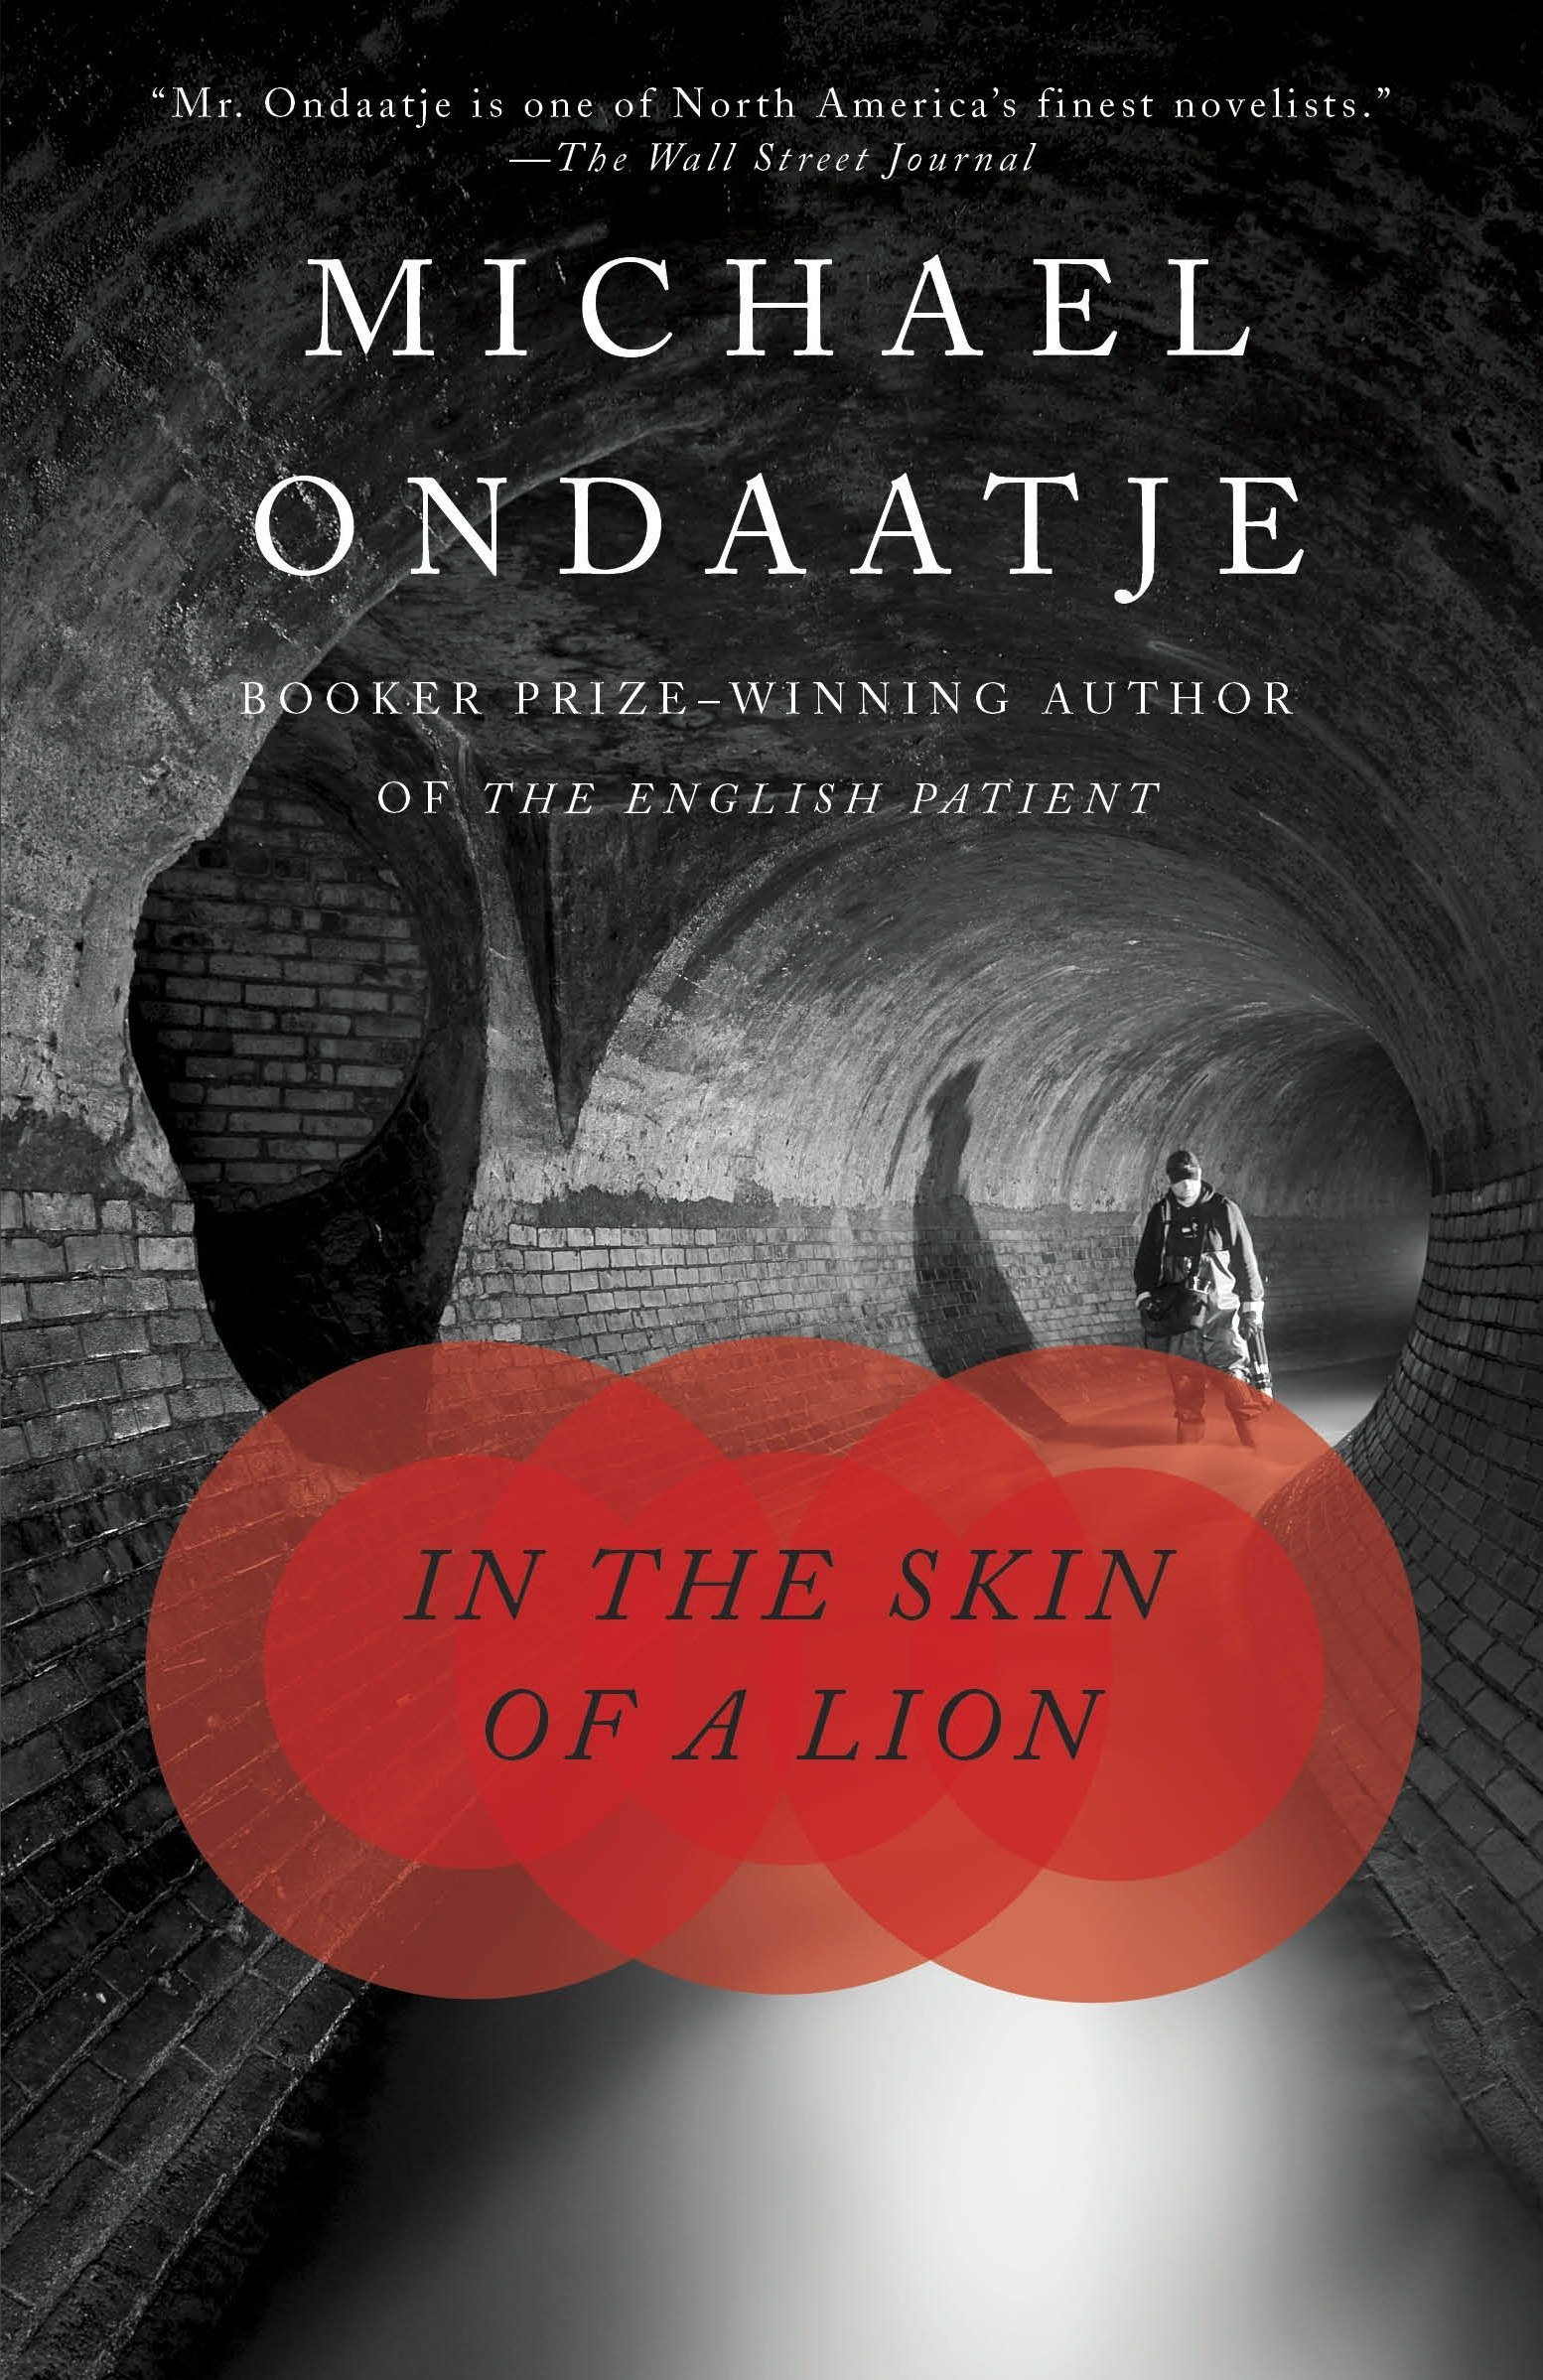 in the skin of a lion analysis